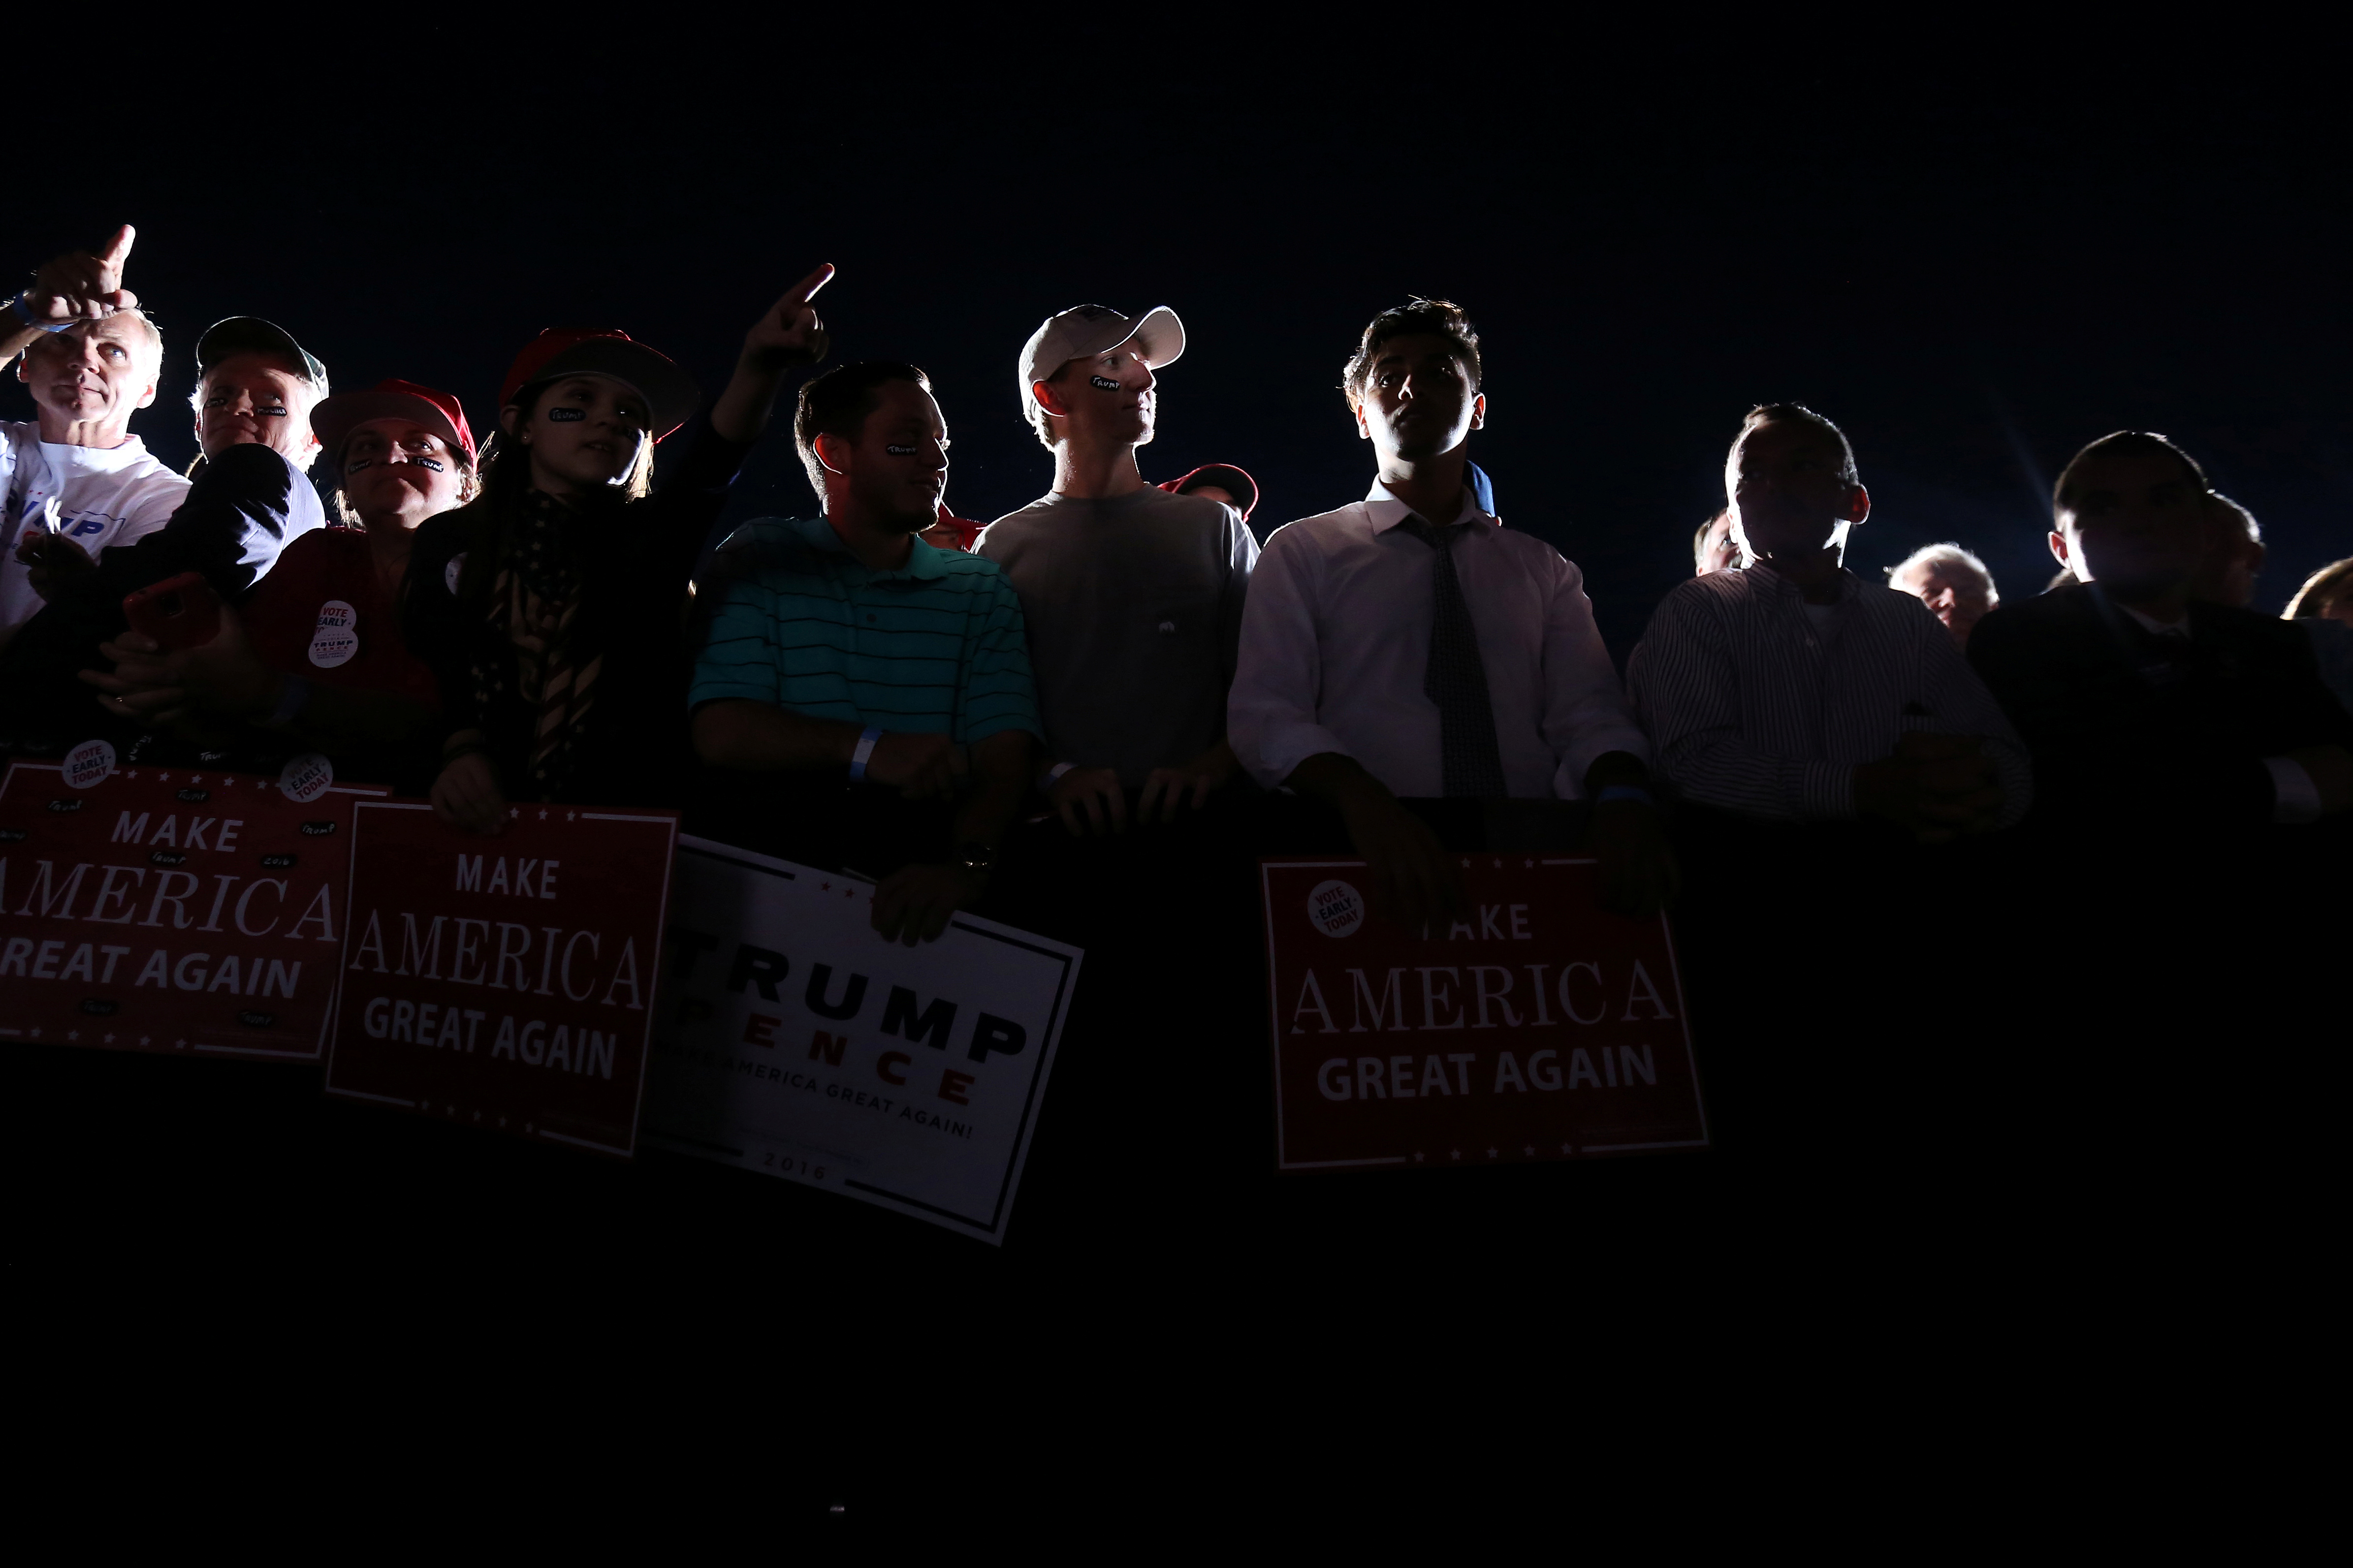 People wait for Donald Trump to speak at a campaign event on the tarmac of the airport in Kinston, North Carolina, on Oct. 26 2016.